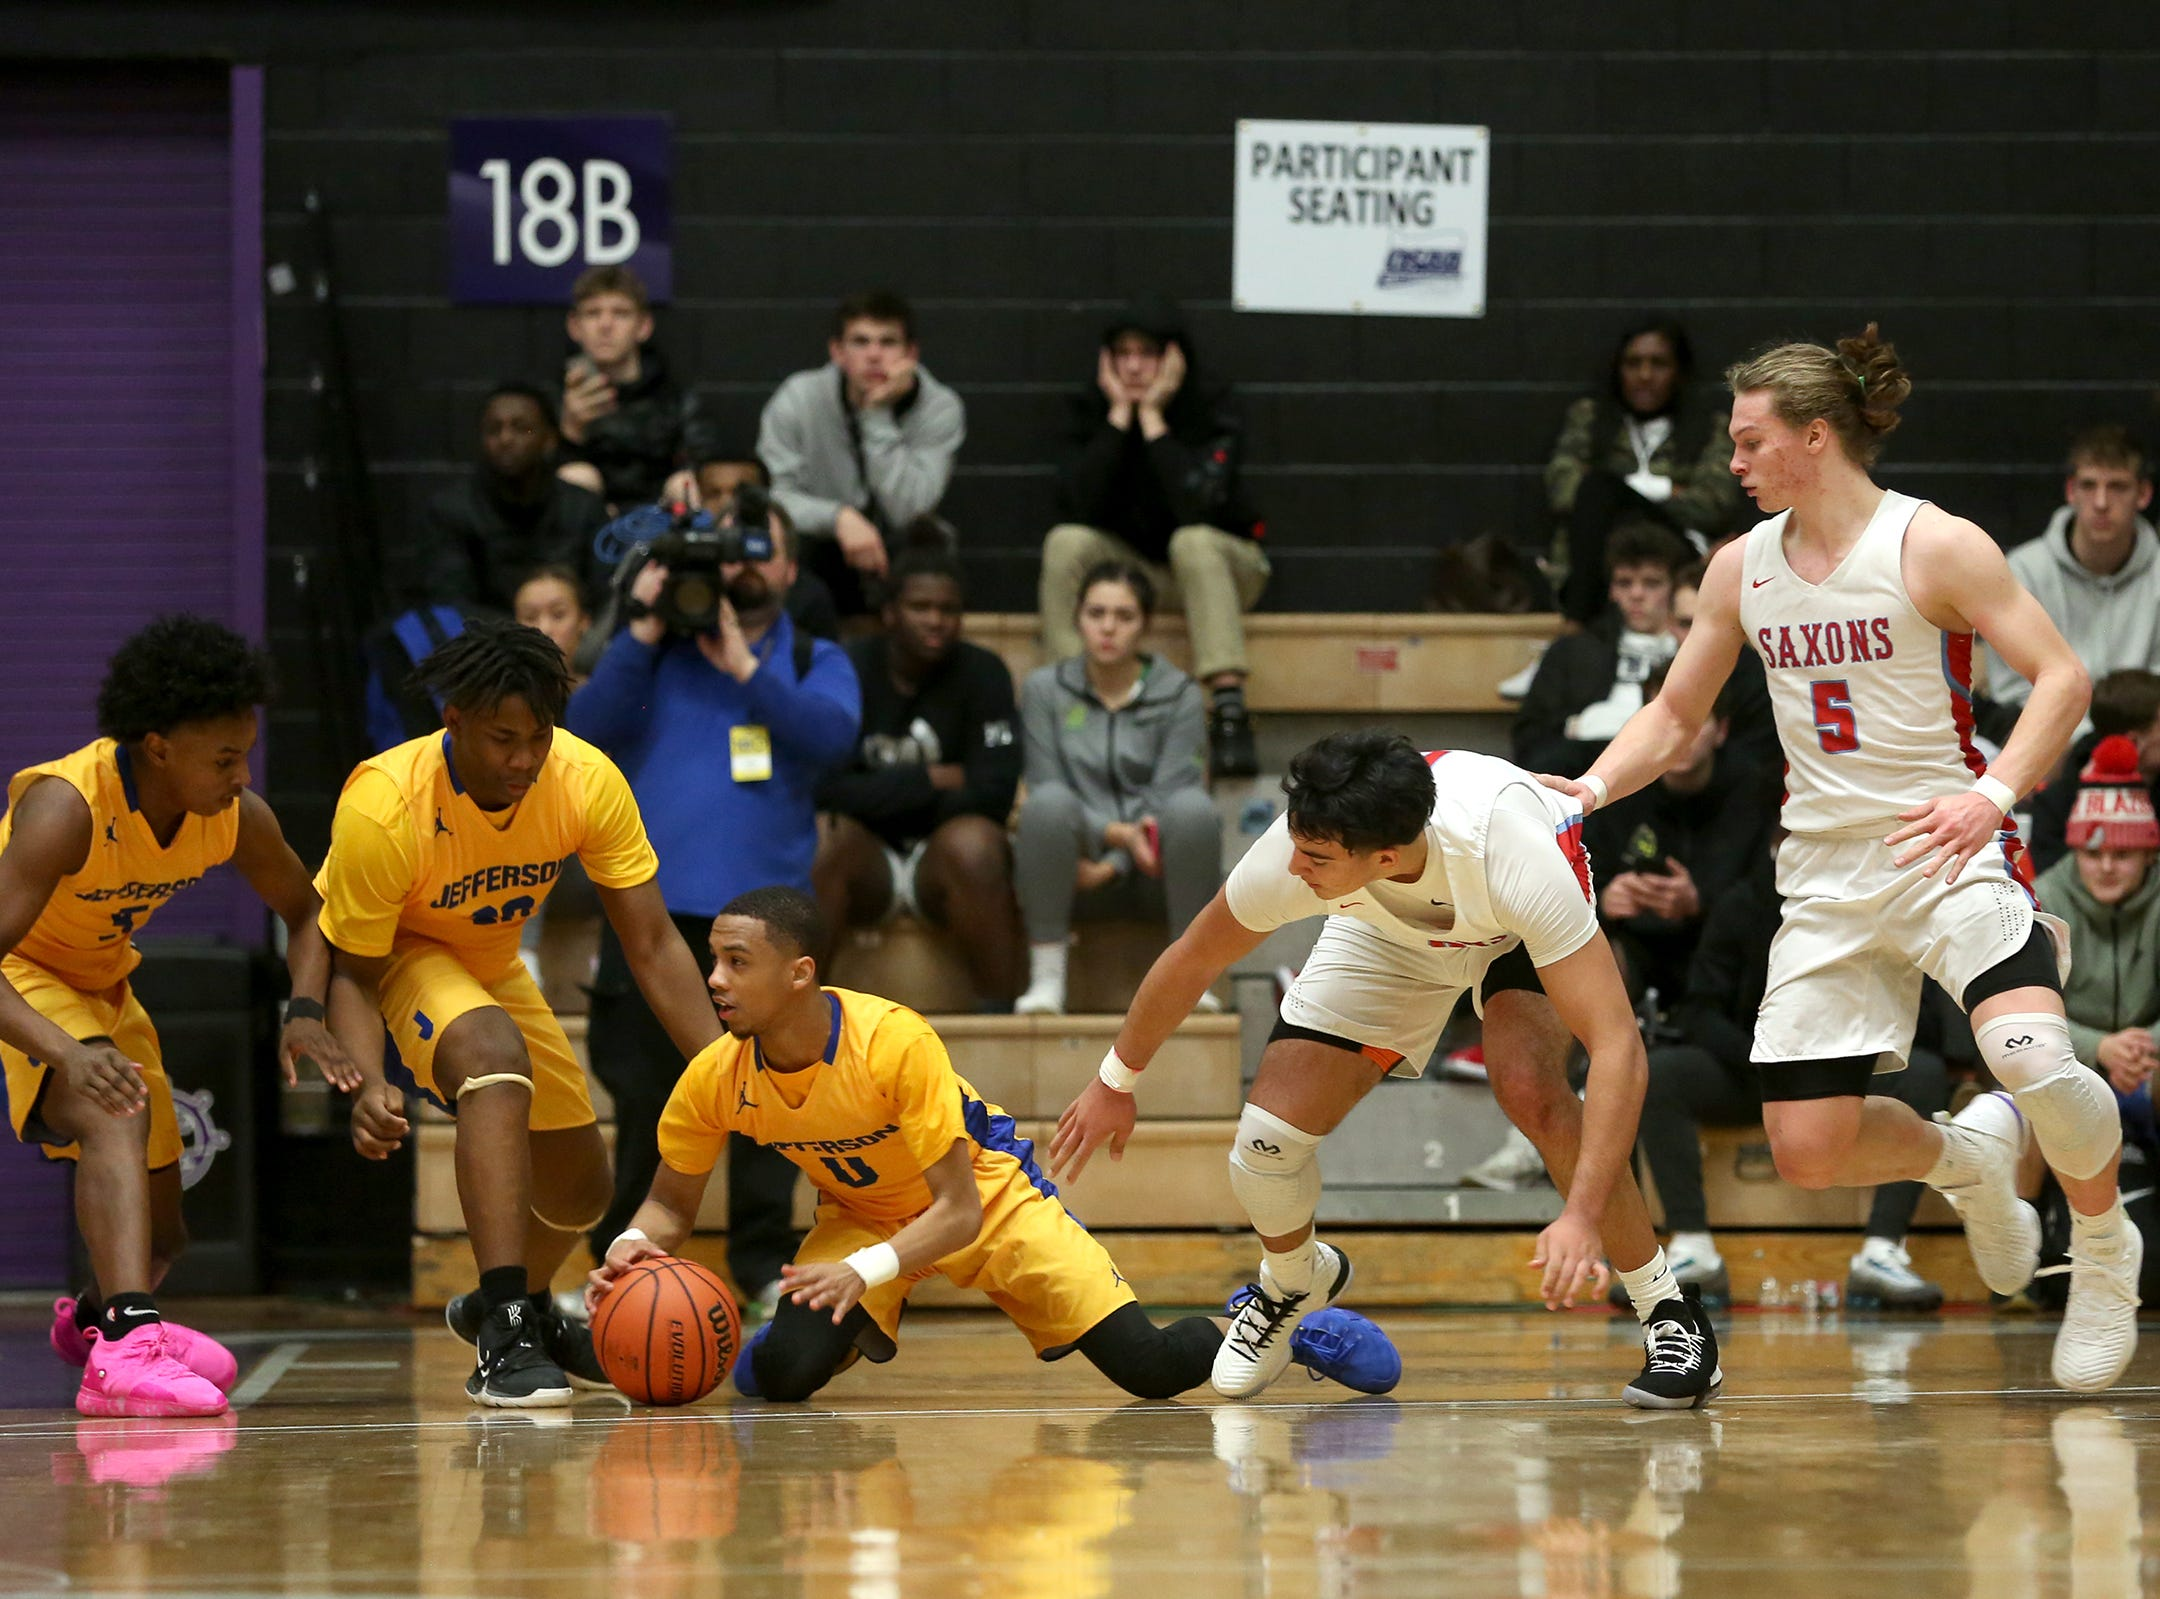 Jefferson and South Salem players struggle for the ball during the South Salem vs. Jefferson boys basketball OSAA 6A semifinal game at Chiles Center in Portland on Friday, March 8, 2019.